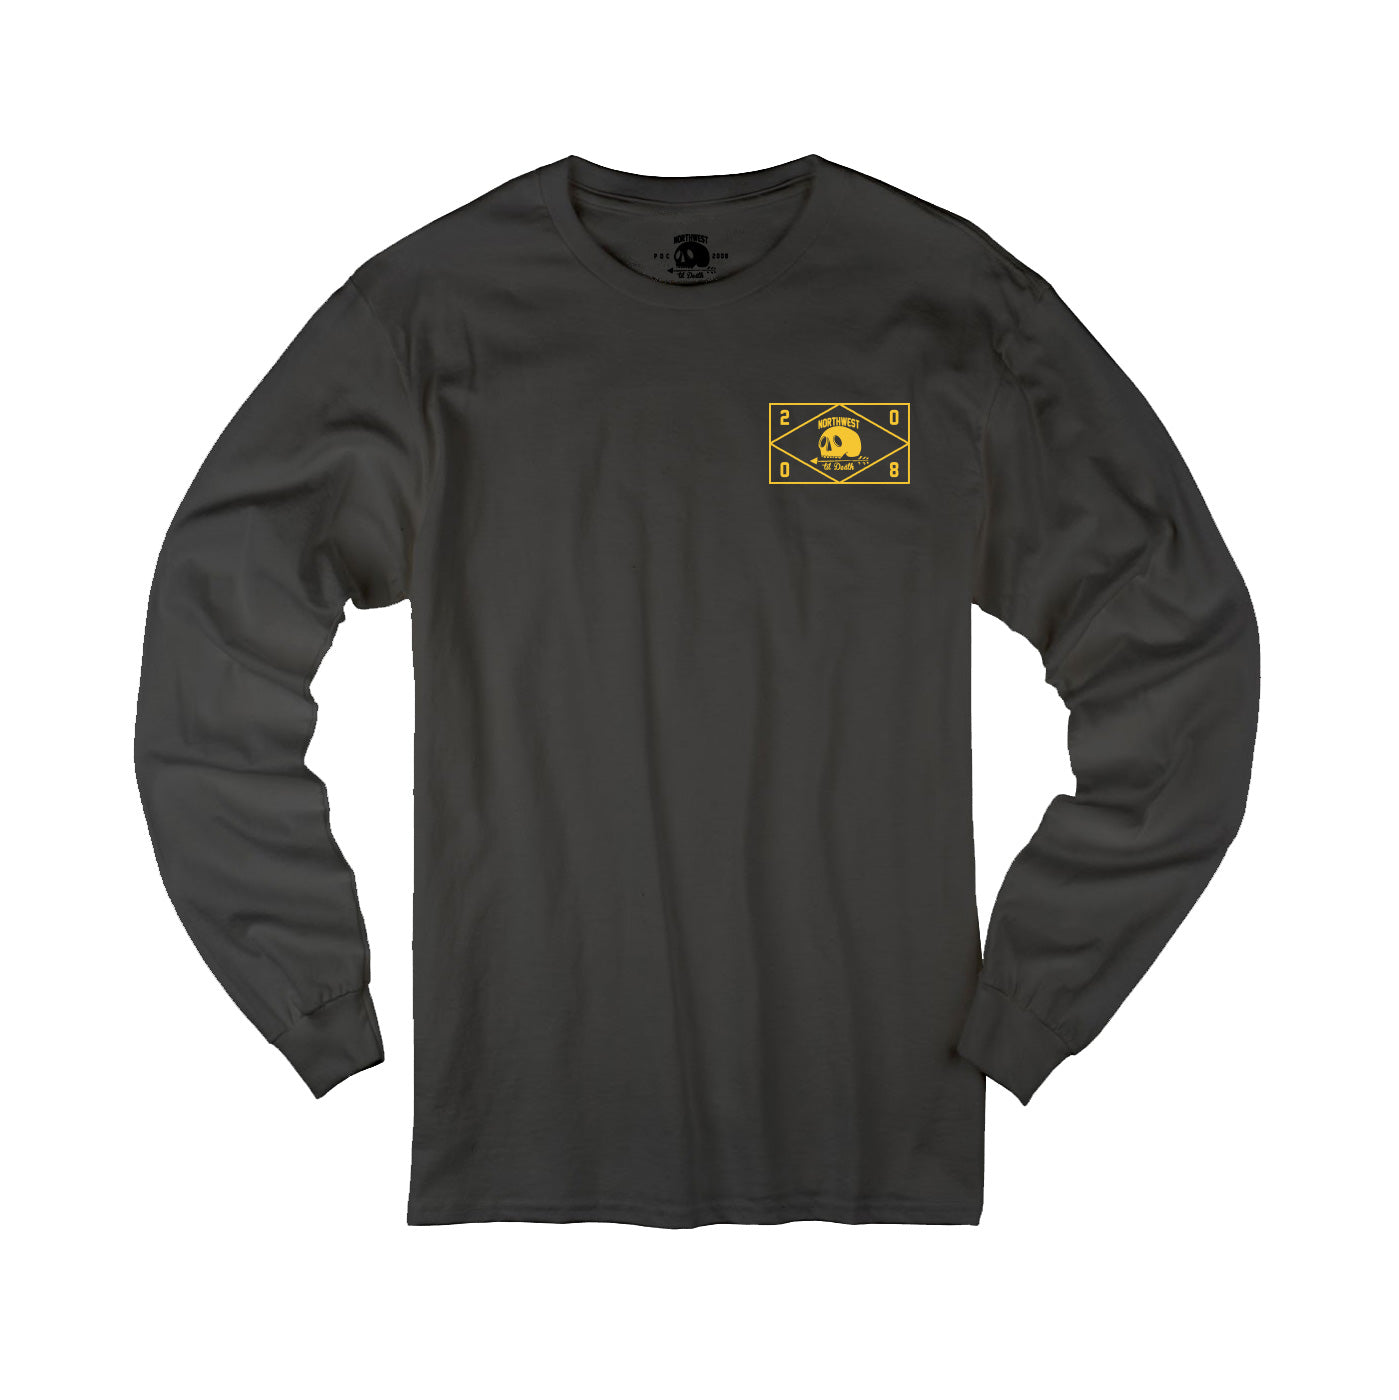 Pocket Knife Long Sleeve Shirt